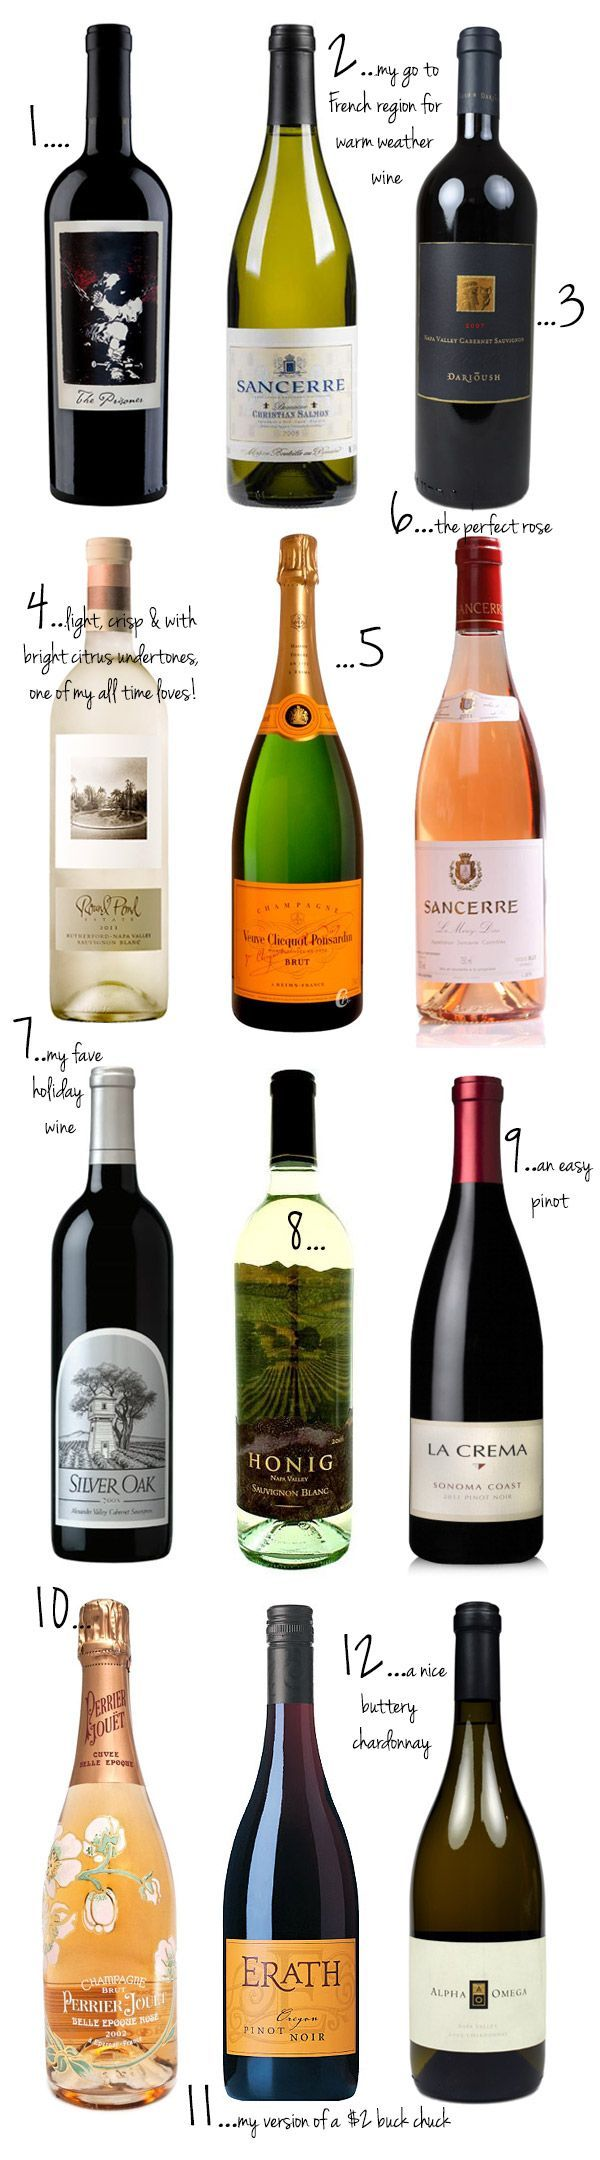 Top wine and champagne picks. Yes, the prisoner is that good.